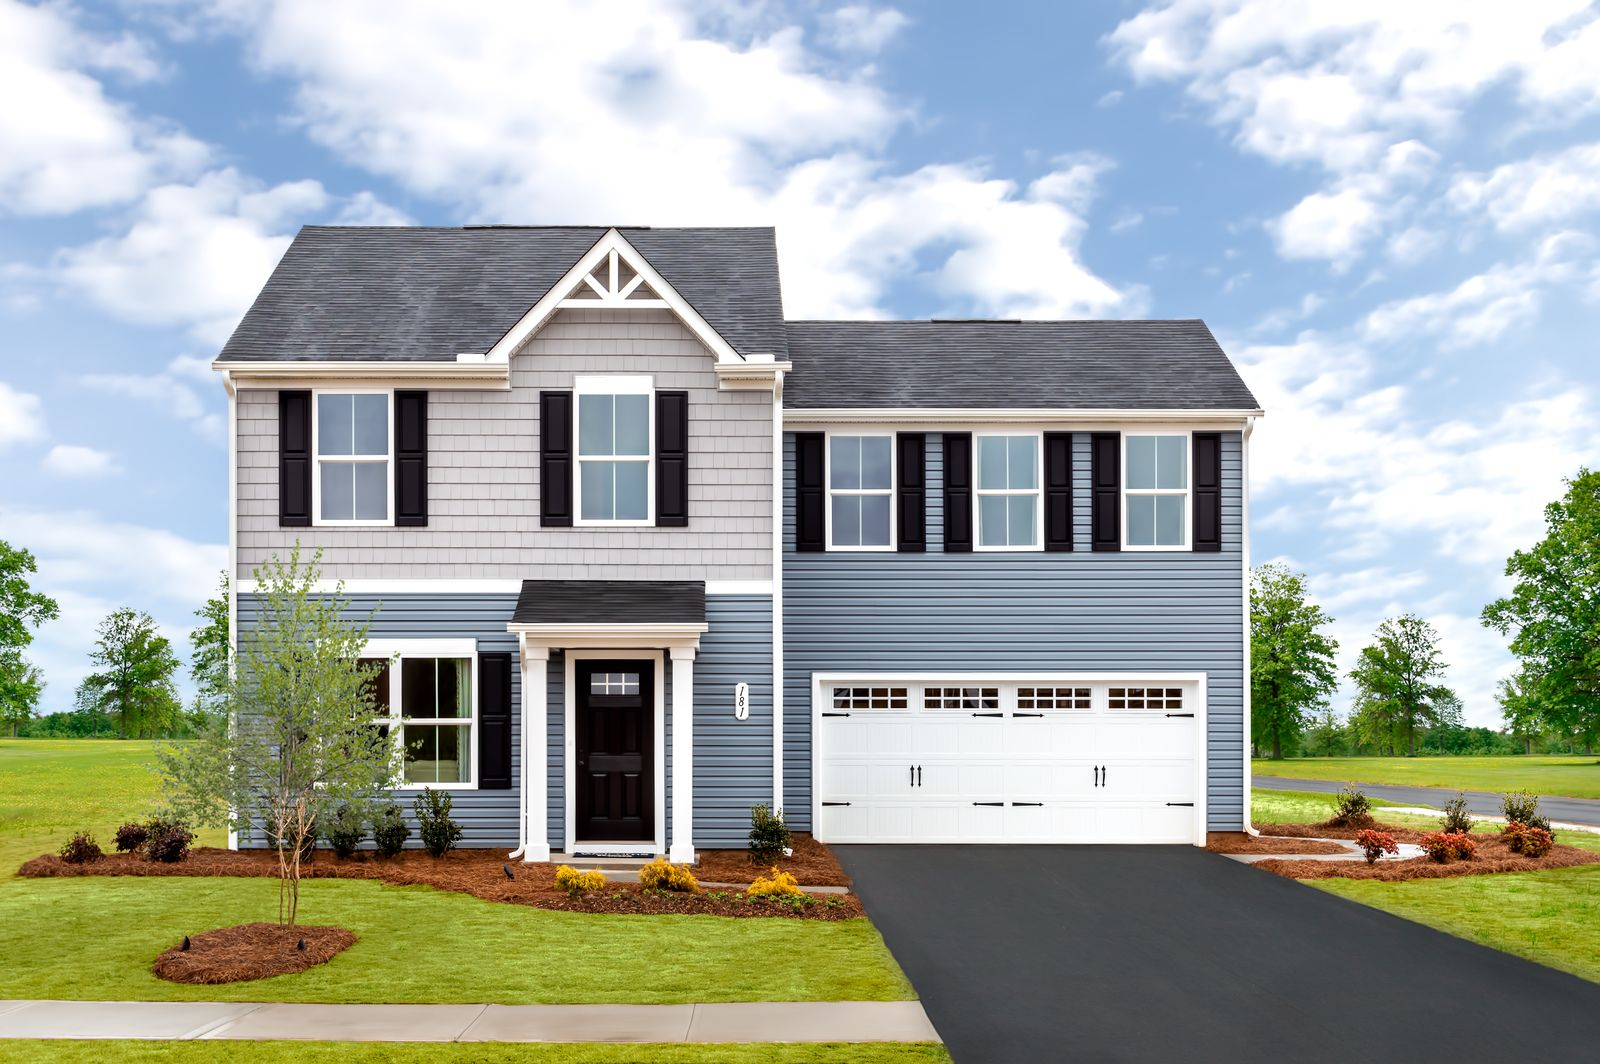 AFFORDABLE SINGLE FAMILY HOMES WITH AMENITIES:Lowest priced new single family homes in Spring Mills school district, 1 mile off I-81. From the low $200s. Opening to VIPsMarch 2021.Join the VIP List Now.